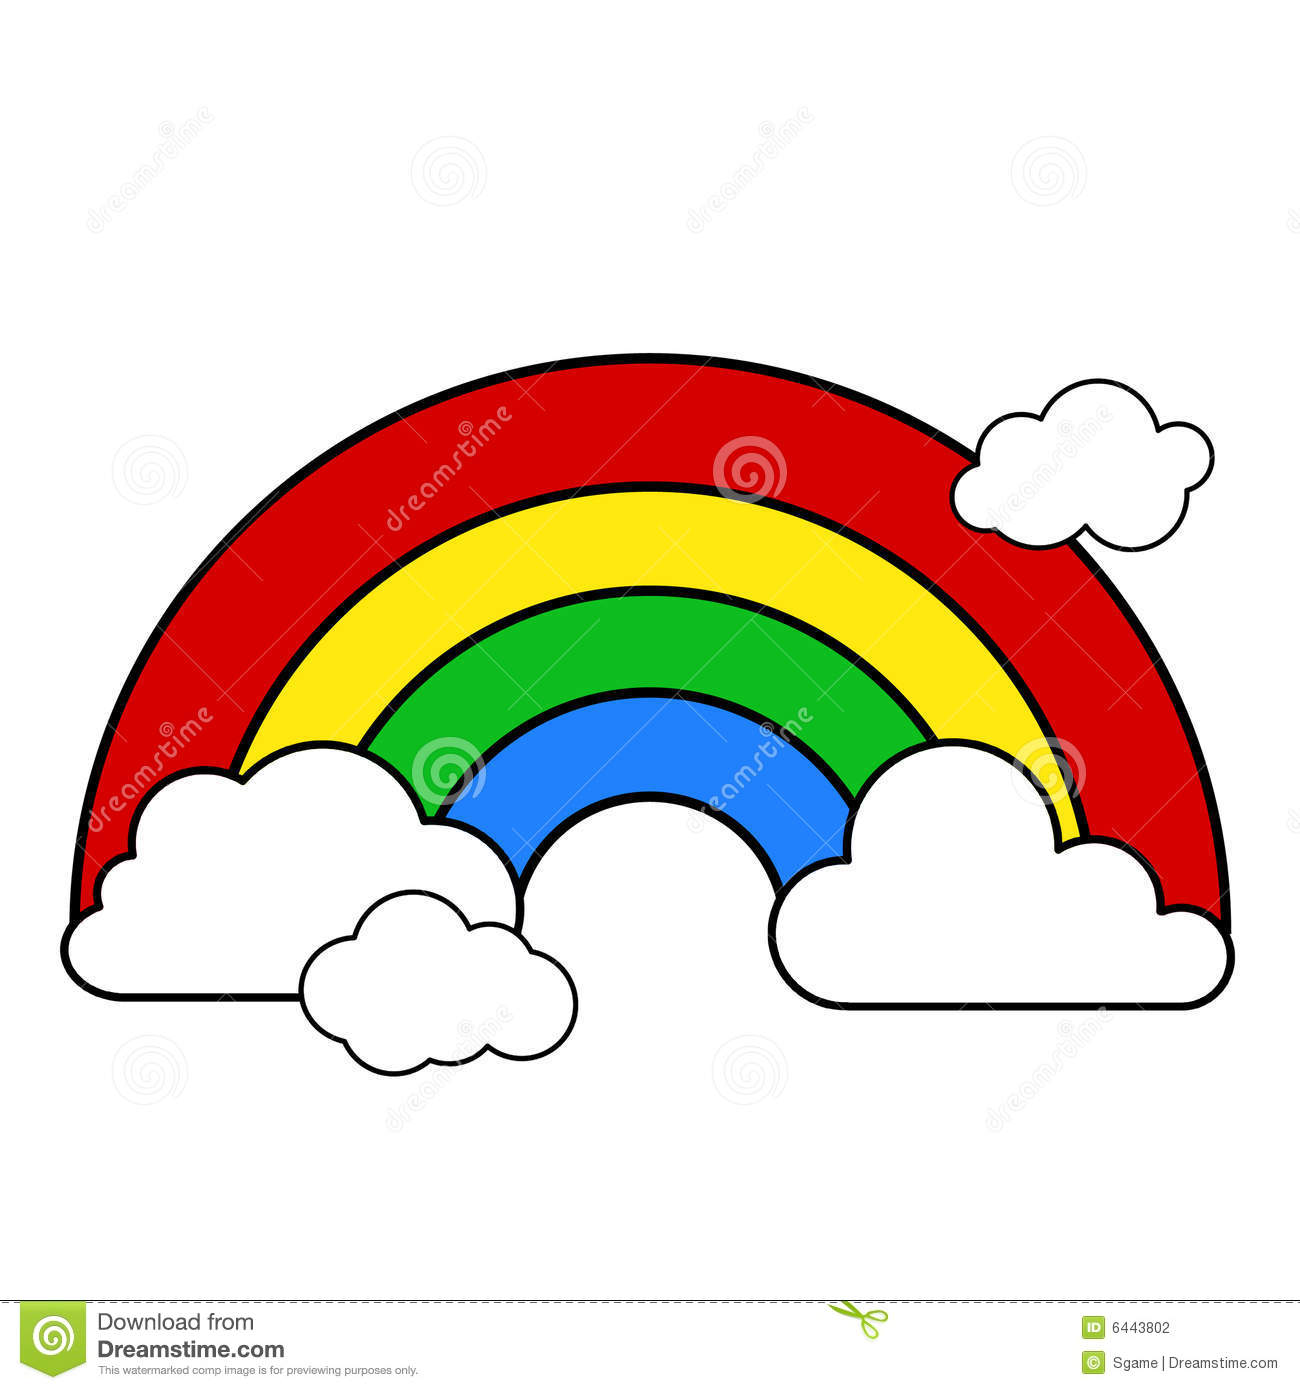 Rainbow Clipart Black And White Black And White Rainbow Outline